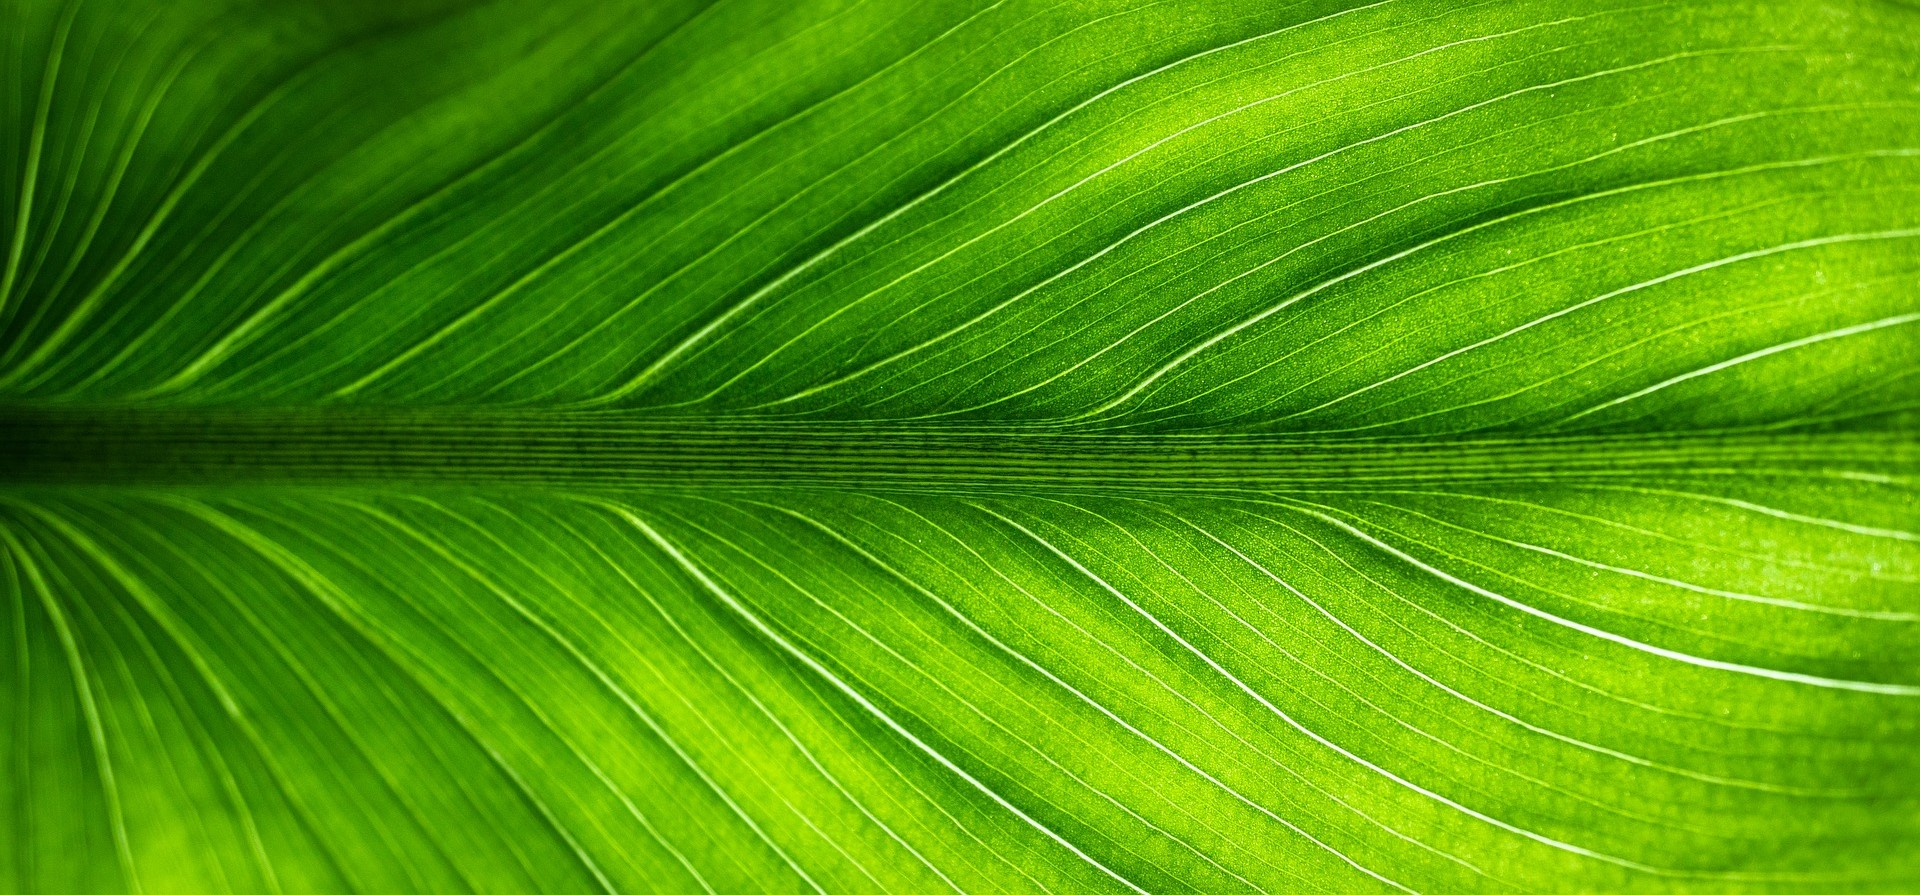 green leaf-2210973_1920 - right.jpg